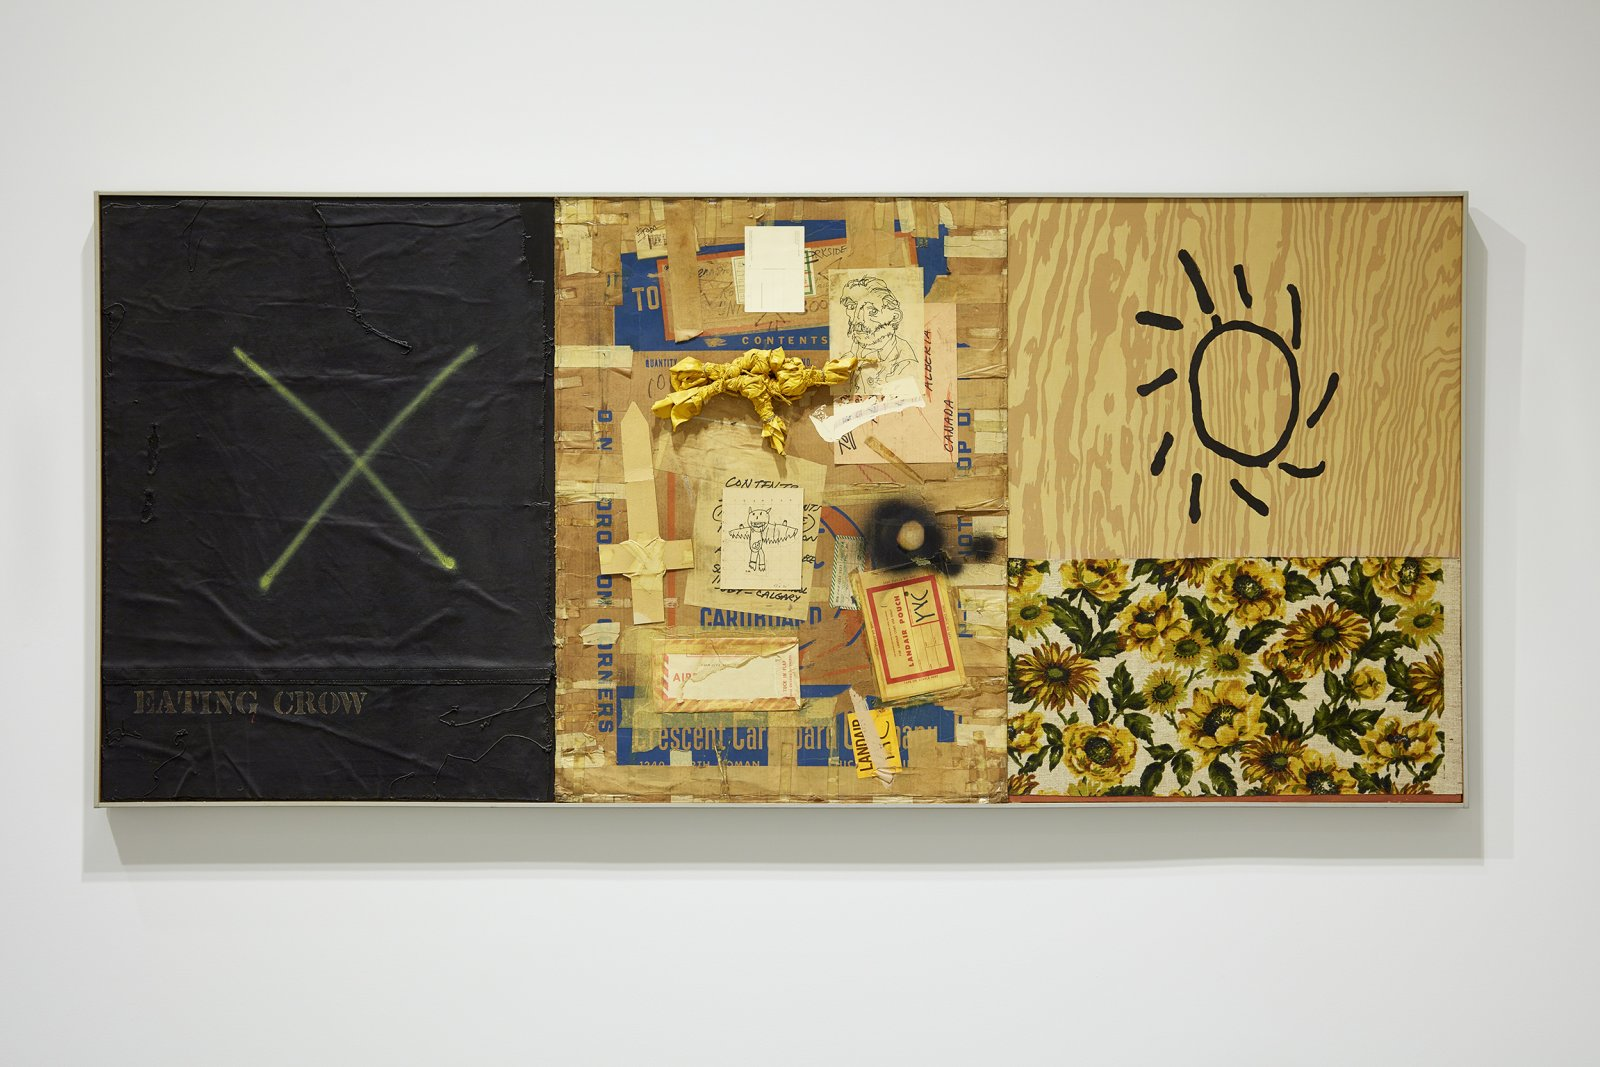 Ron Moppett, Eating Crow, 1976, mixed media on canvas, 41 x 93 in. (105 x 237 cm). Installation view, Every Story Has Two Sides, Art Gallery of Alberta, Edmonton, 2016 by Damian Moppett